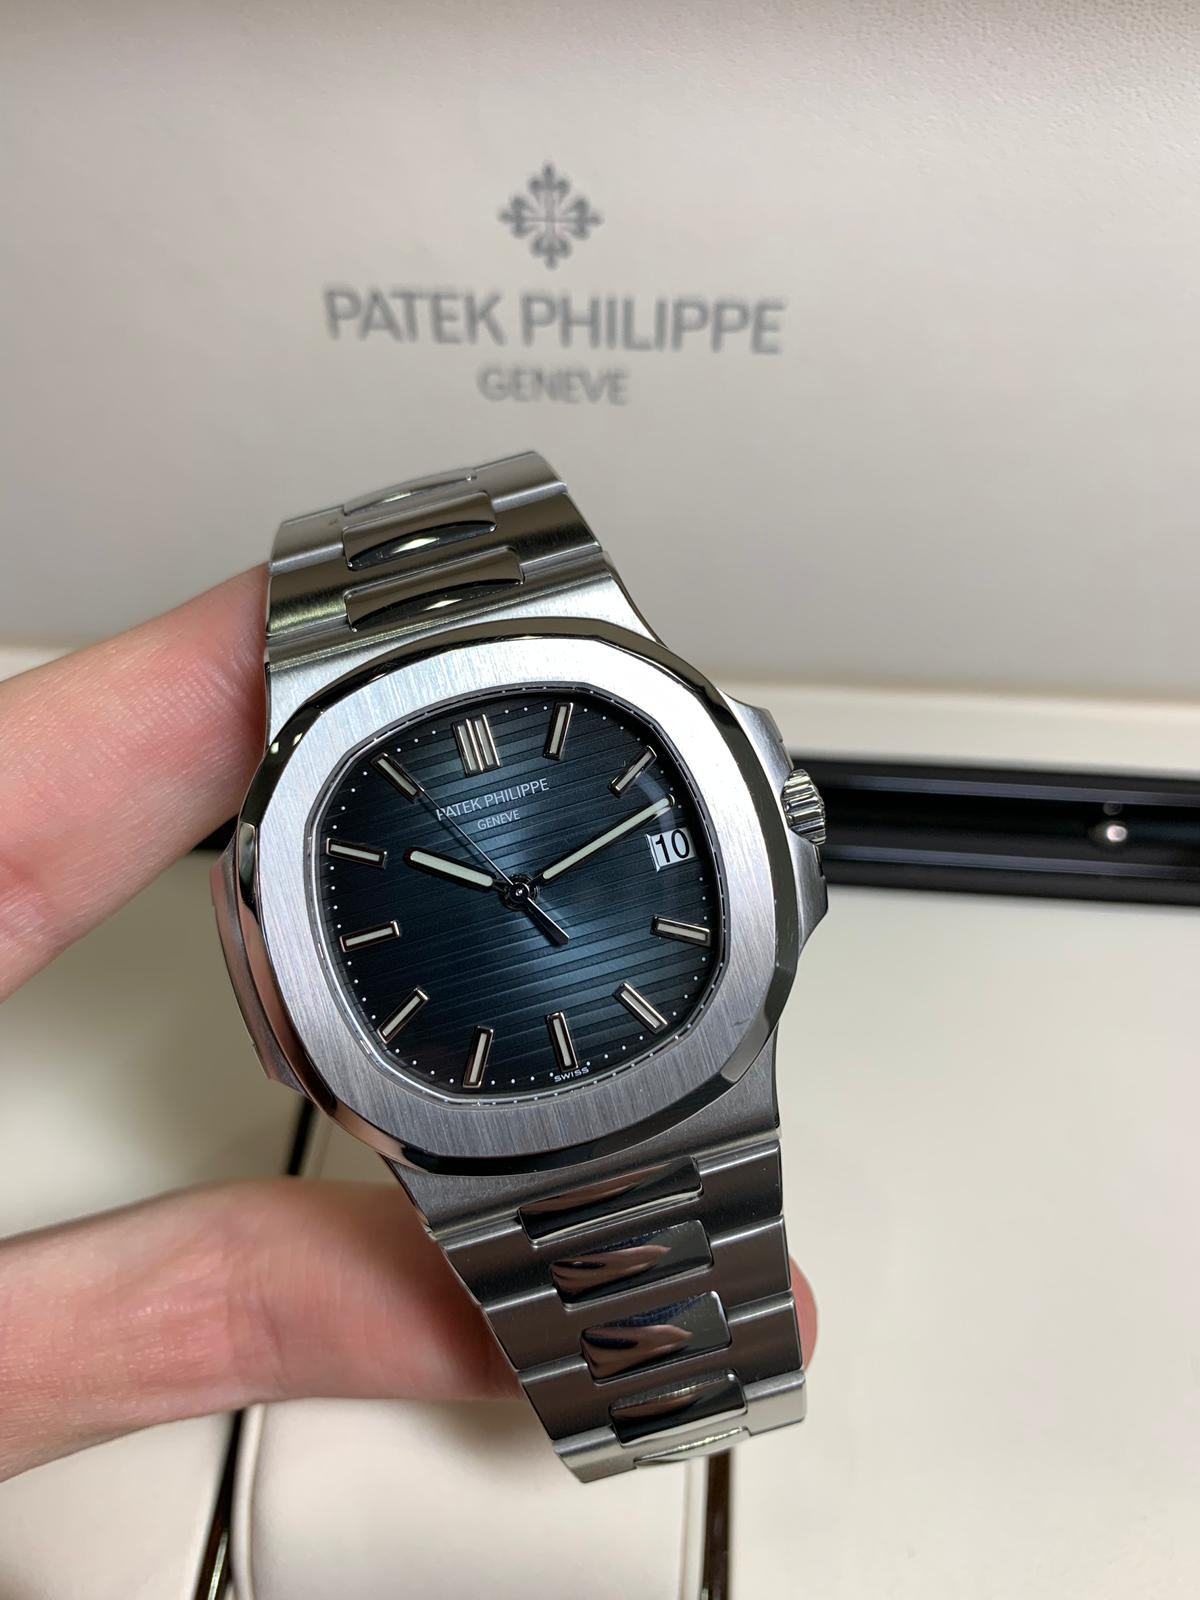 Patek Philippe Nautilus 5711 1a 010 In Stainless Steel Blue Dial